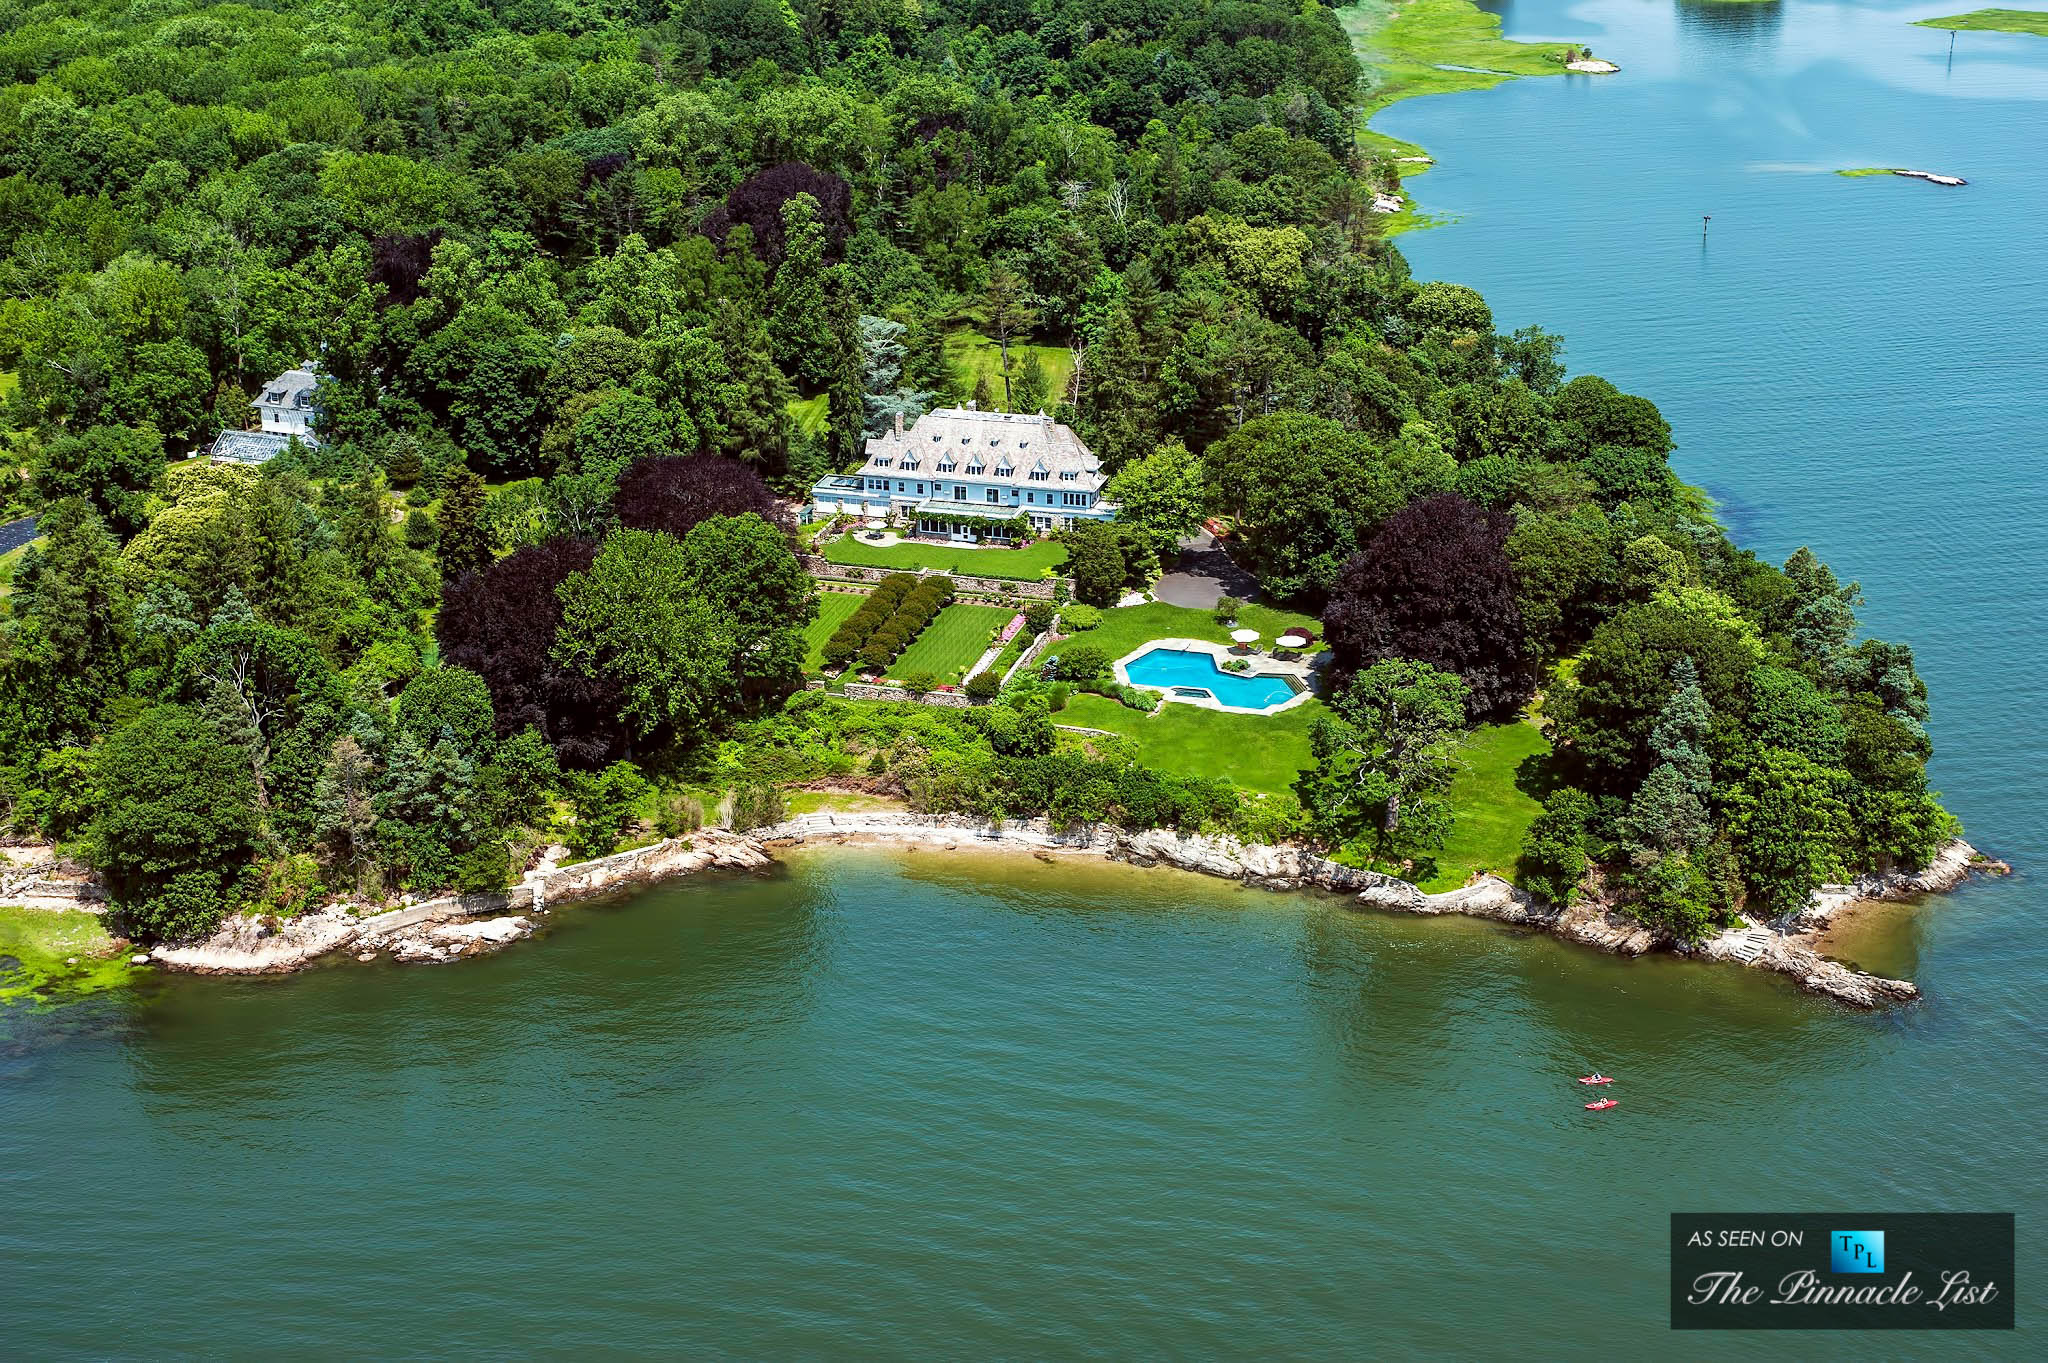 $120 Million - Copper Beech Farm, Greenwich, CT, USA - Exceeding $100 Million - The 5 Most Expensive Homes Sold in the World